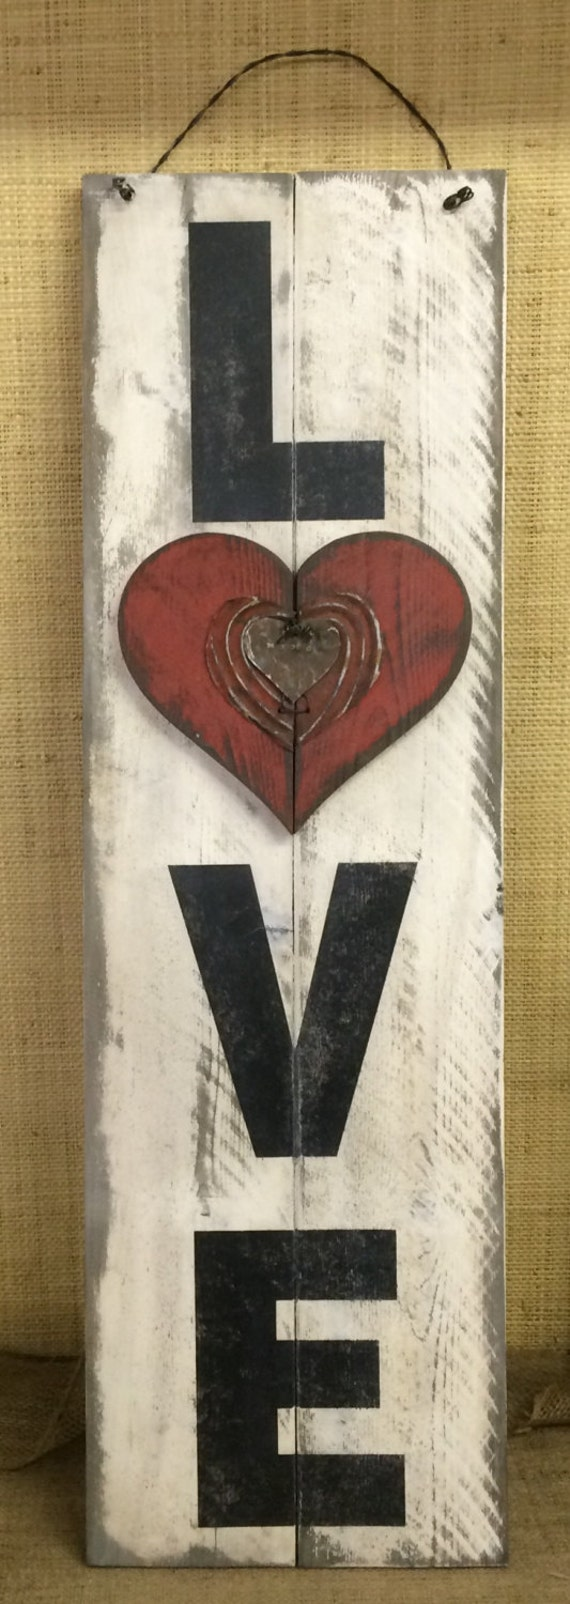 Valentines Day Heart Wall & Door Signs | Valentine's Day Wikii |Valentine Hand Painted Wood Signs